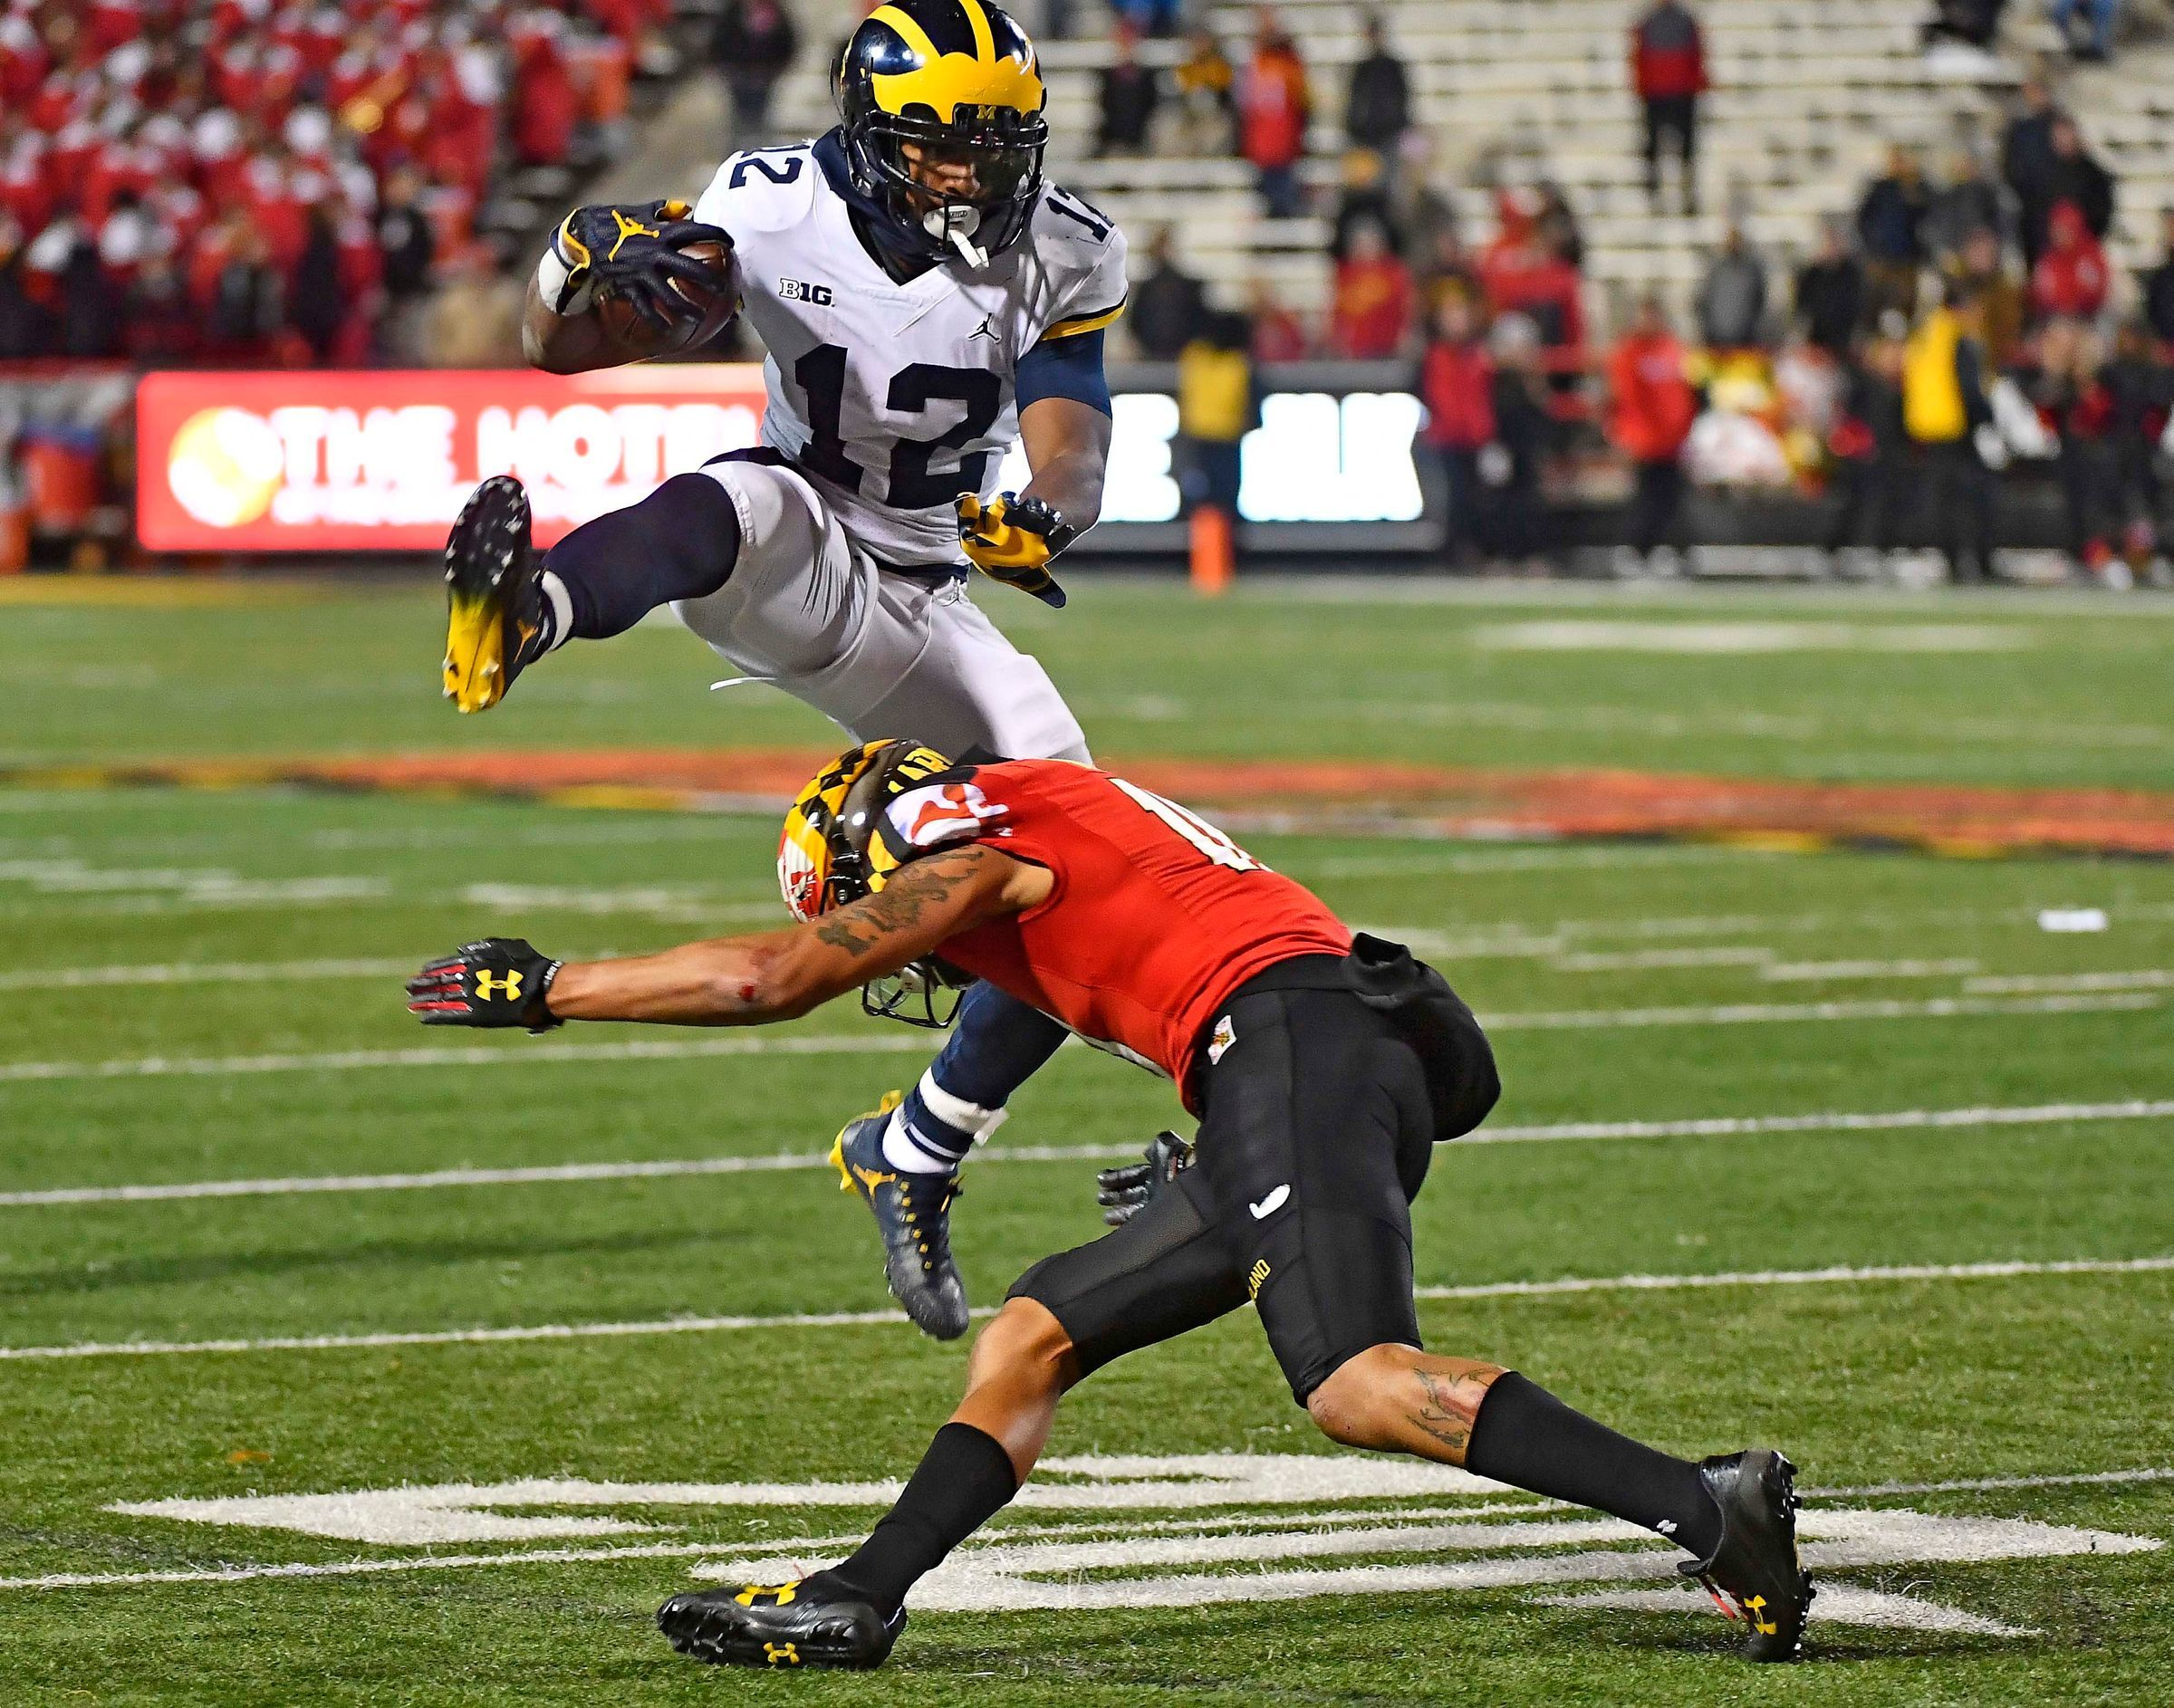 Michigan's Chris Evans leaps over a Maryland defender in 2017.